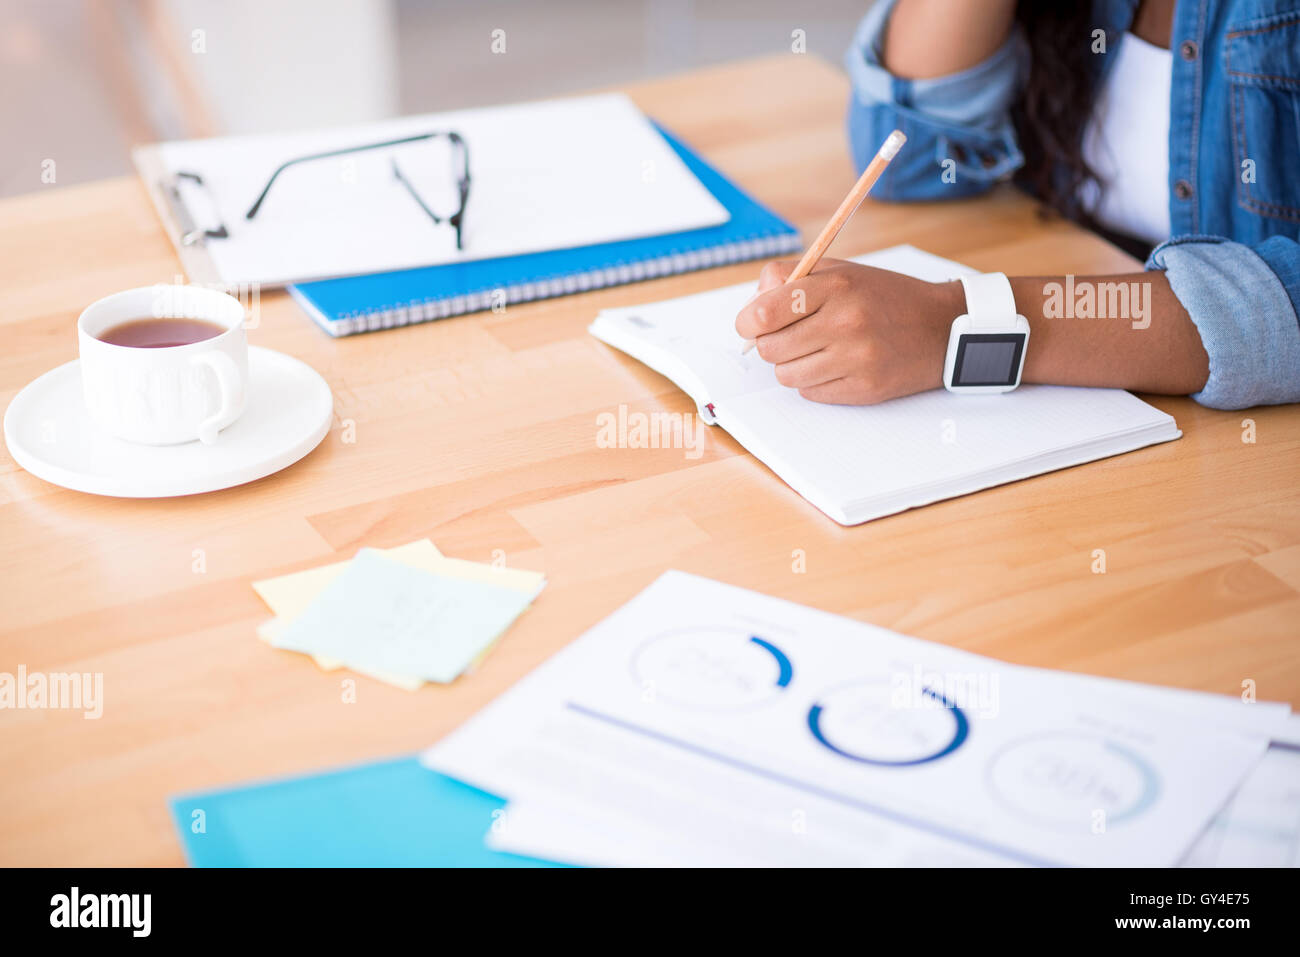 Pleasant woman making notes. - Stock Image